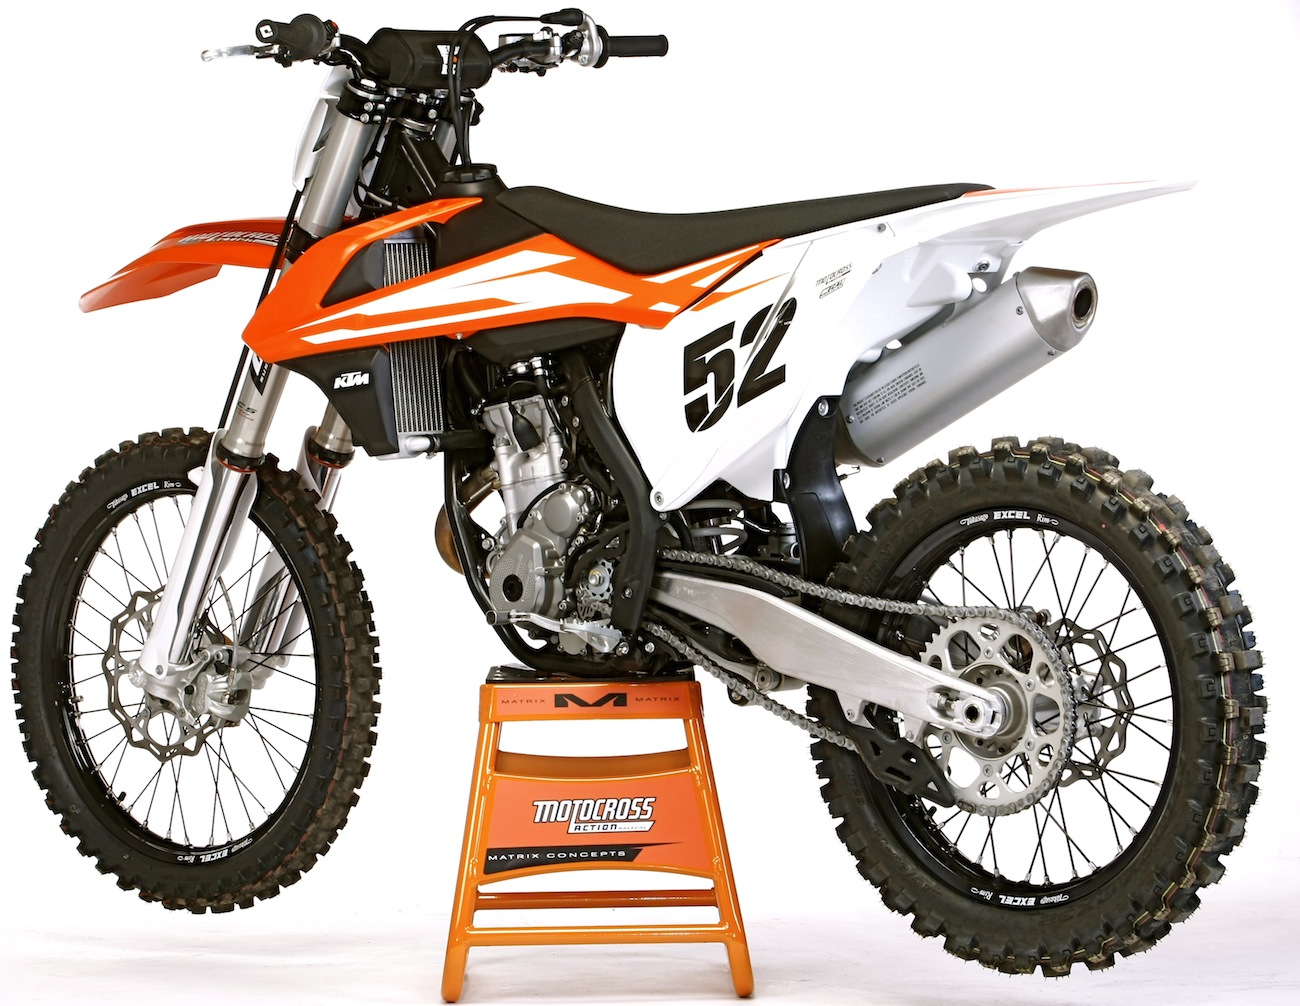 Mxas Ktm 350sxf Tech Tips Setup Advice Motocross Action Magazine 2014 350 Sx F Wiring Diagram Neutral Is Hard To Find When The Engine Running But That So You Cant Accidentally Hit It On Track Once Shut Off